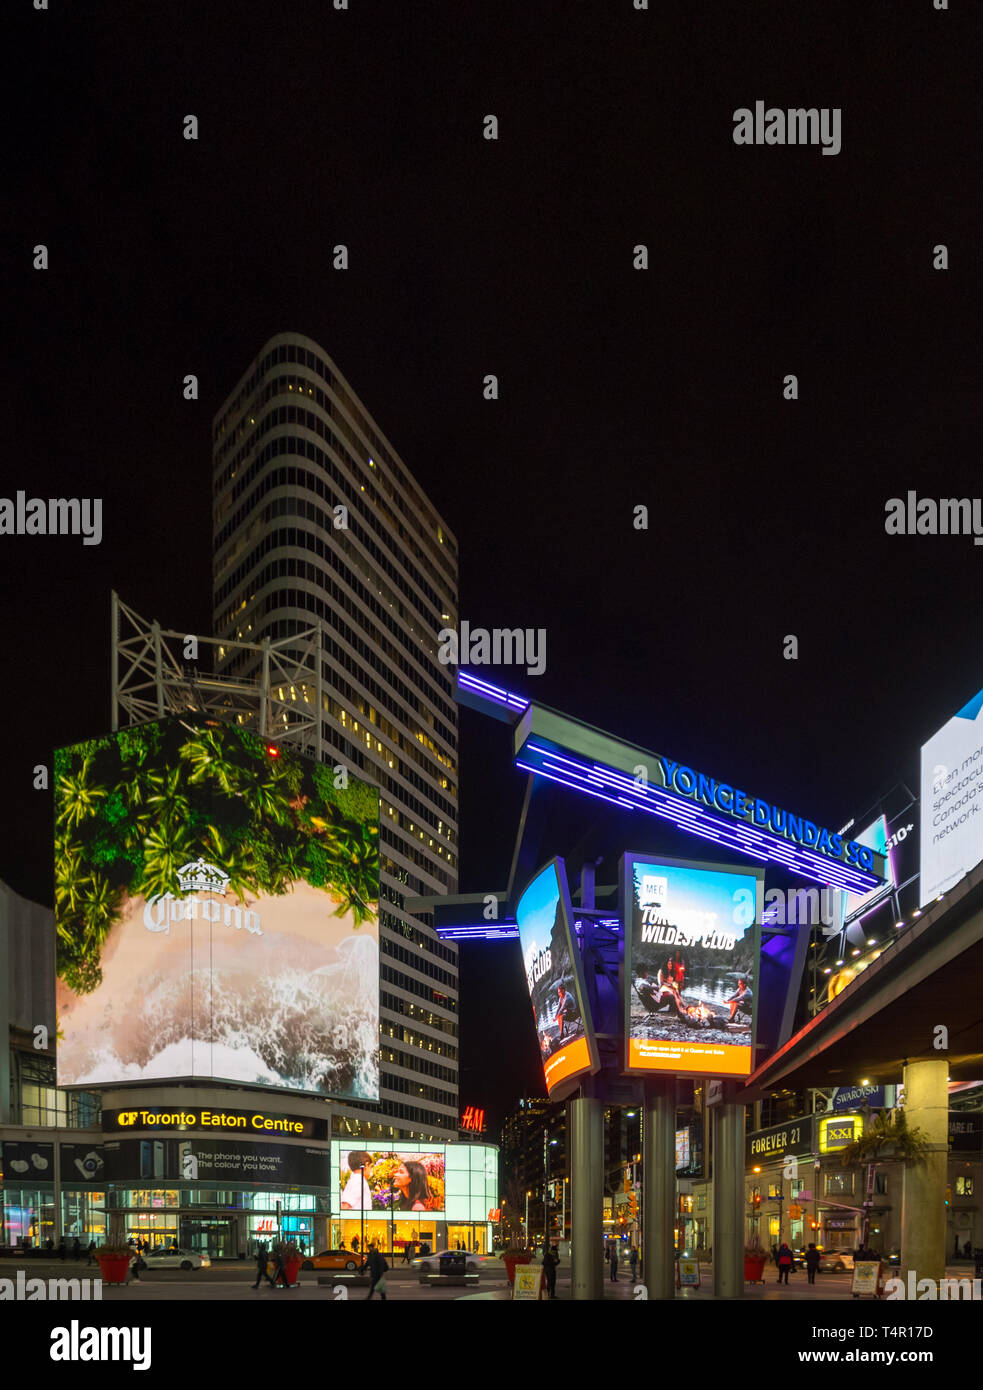 The neon lights and bright LED signs of Yonge-Dundas Square (Dundas Square) and the Eaton Centre at night in downtown Toronto, Ontario, Canada - Stock Image